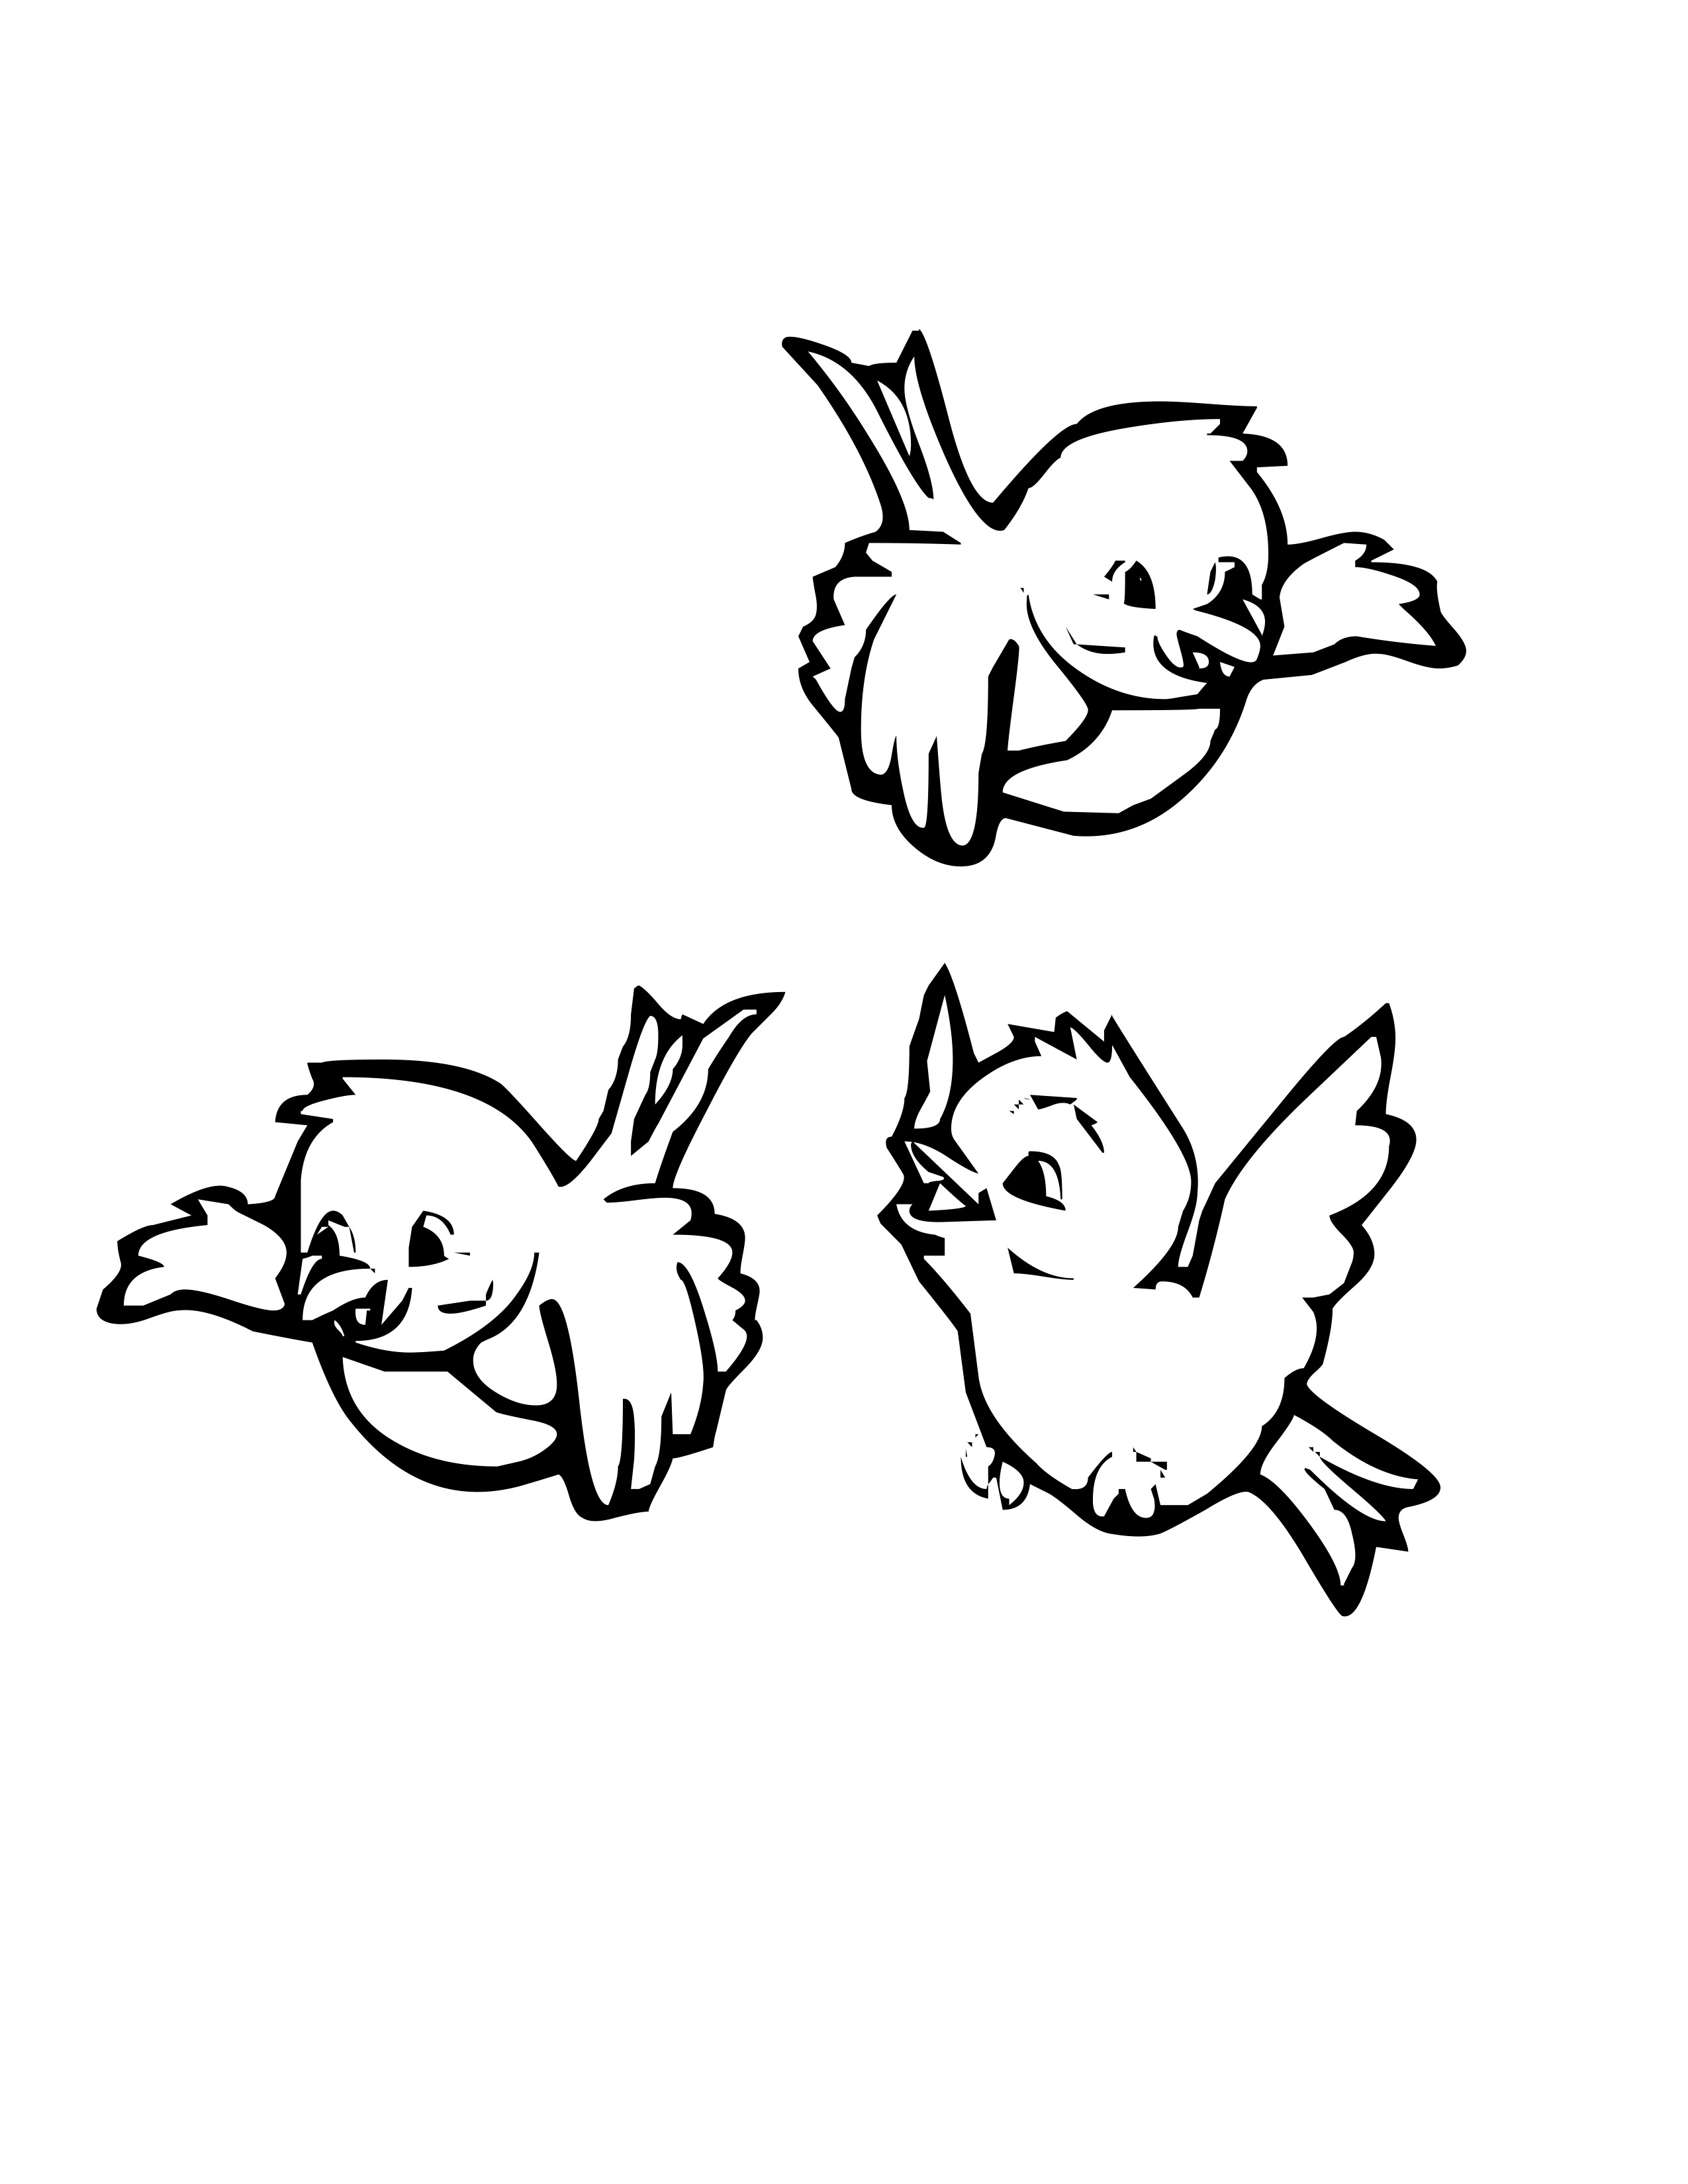 bird colouring pages for kids bird coloring pages bird pages kids colouring for